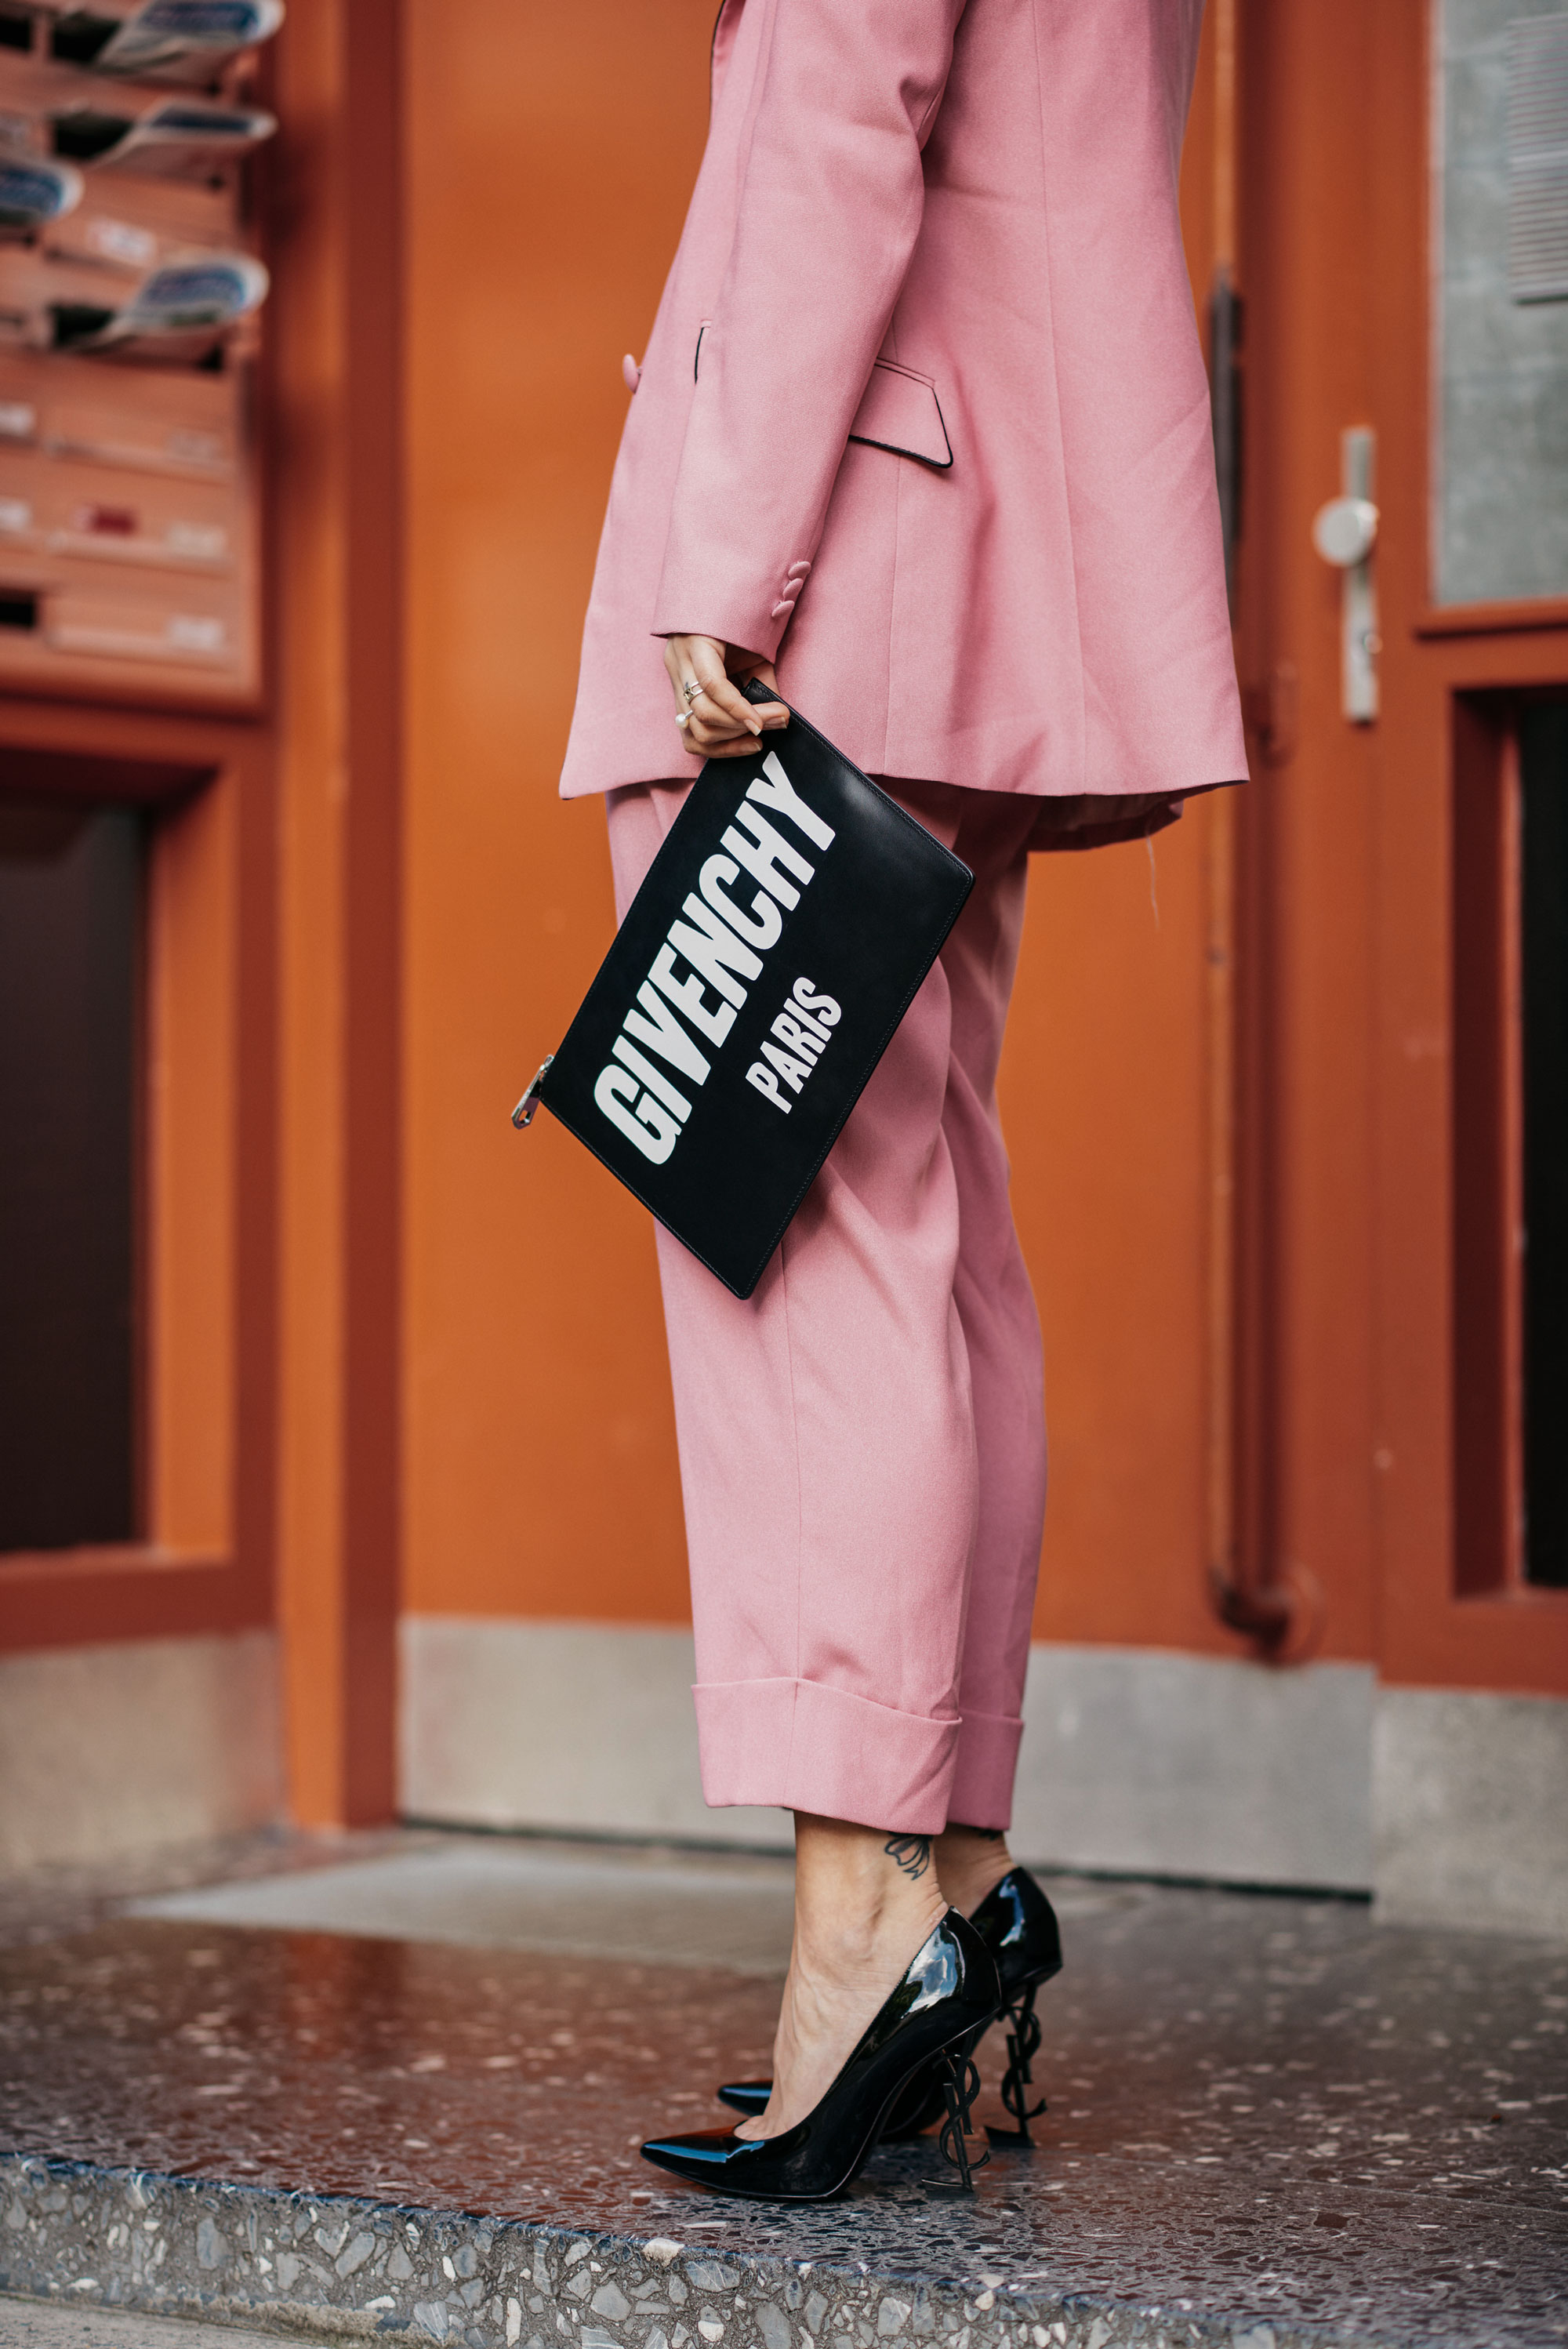 Что такое поколение вечно-розового? | Поколение Y| Hosenanzug in Rosa, Pumps von YSL mit Logo und Givenchy Logo Clutch | #Girlboss | Blogger Editorial Shooting